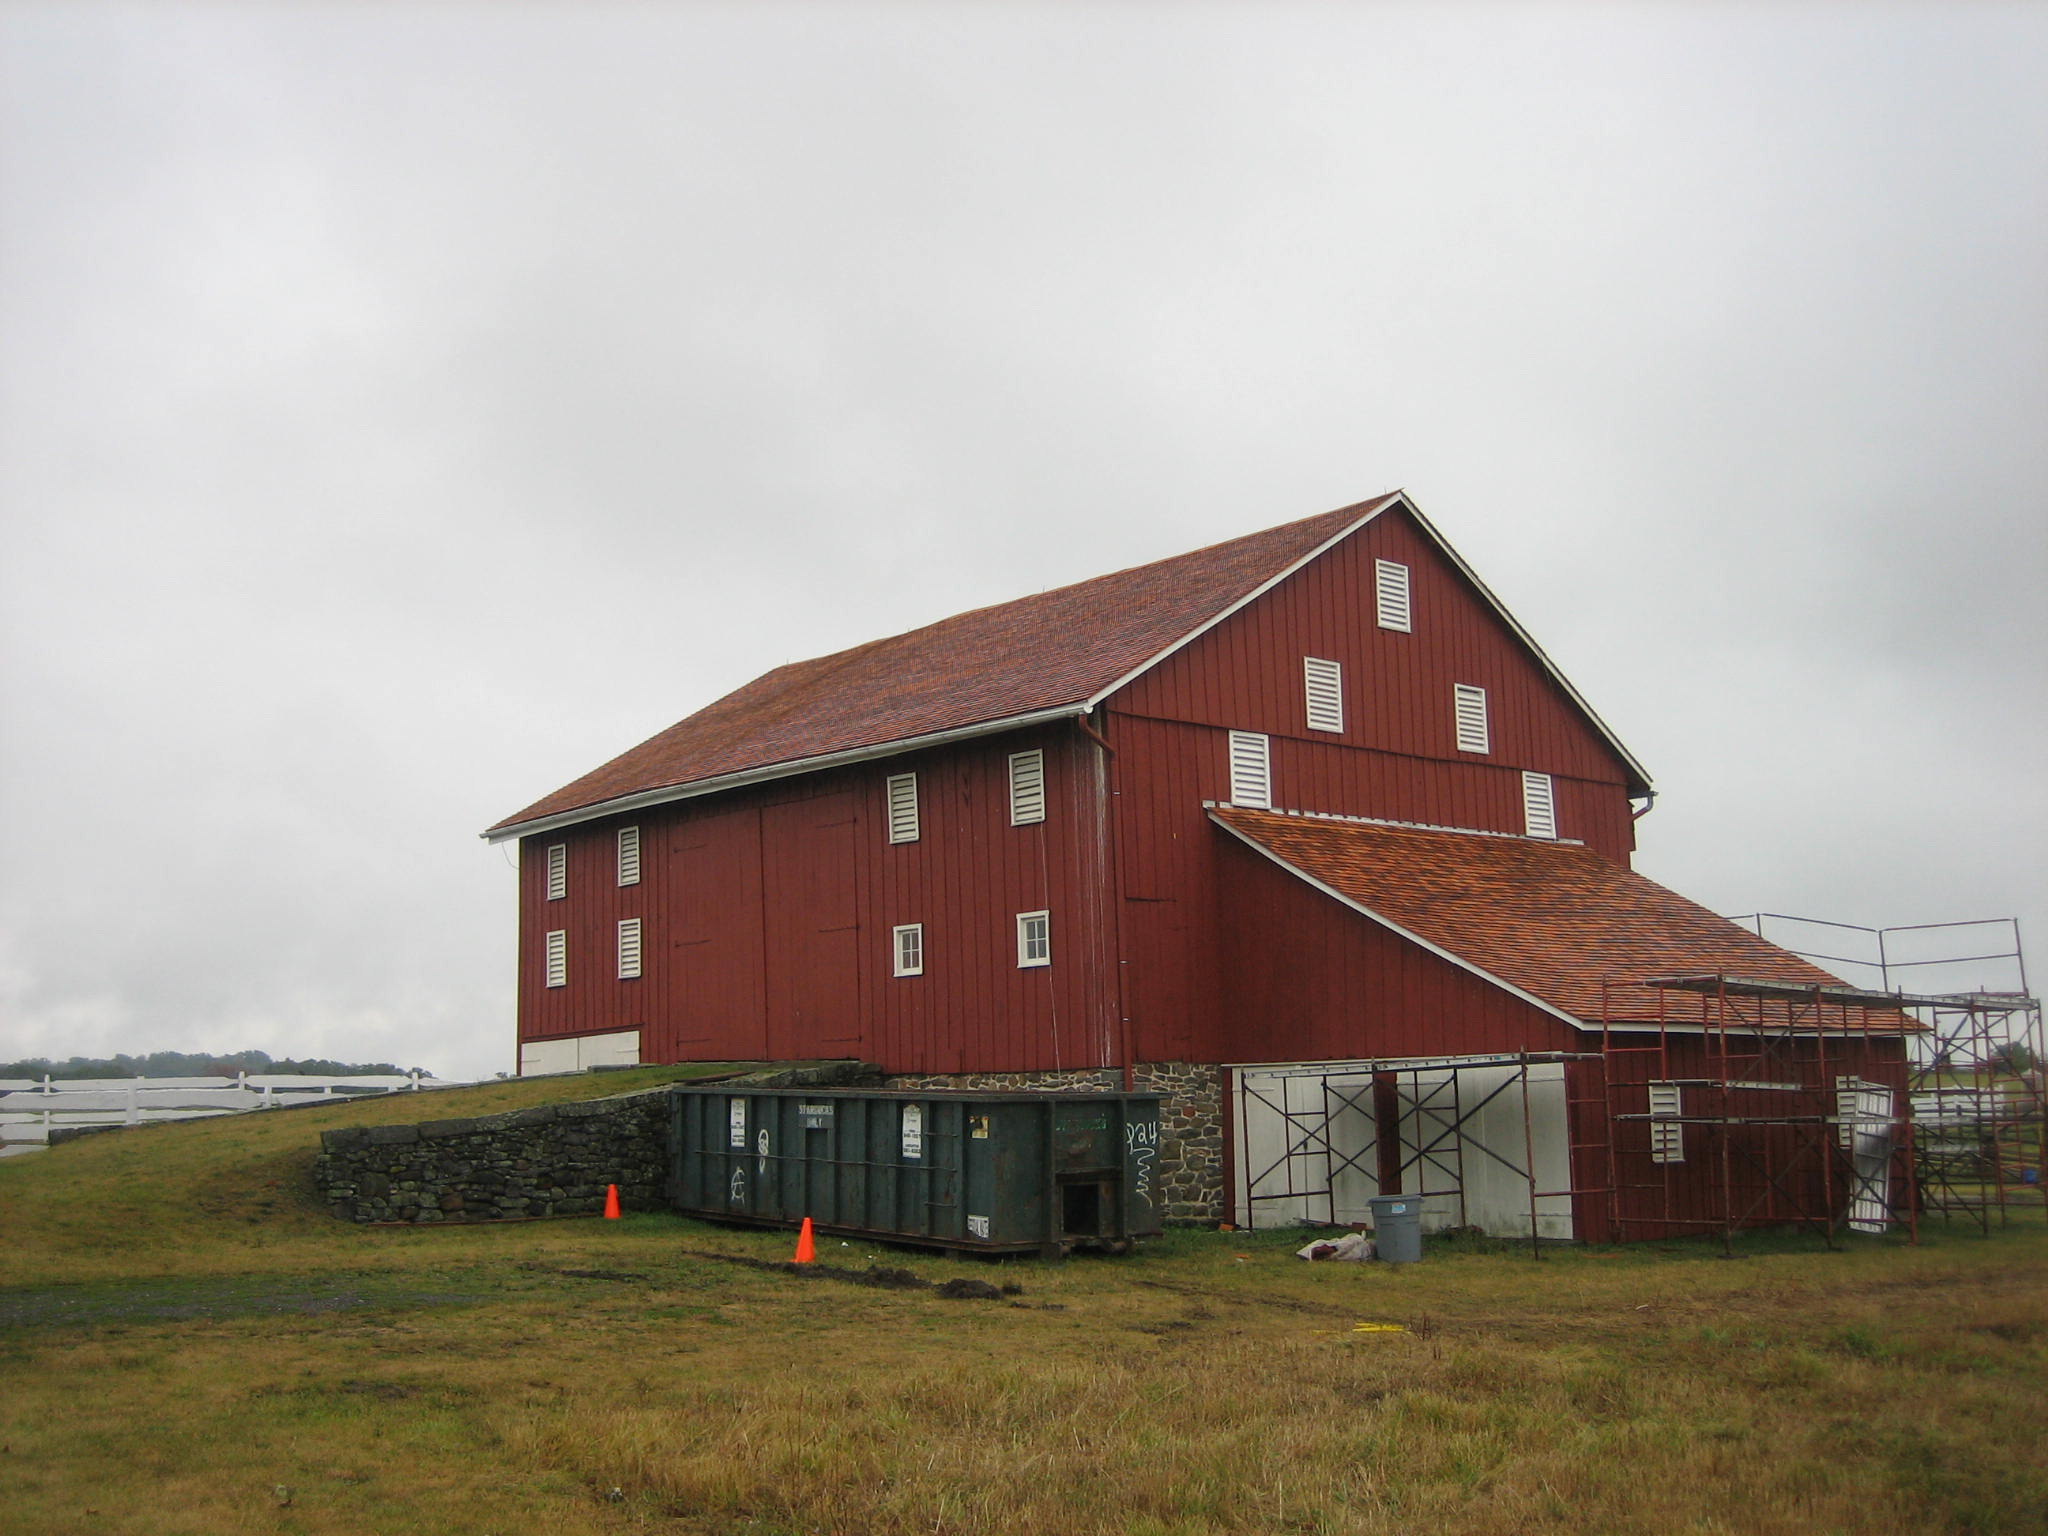 Barn Doors Images Joseph Sherfy Barn Roof Replaced | Gettysburg Daily